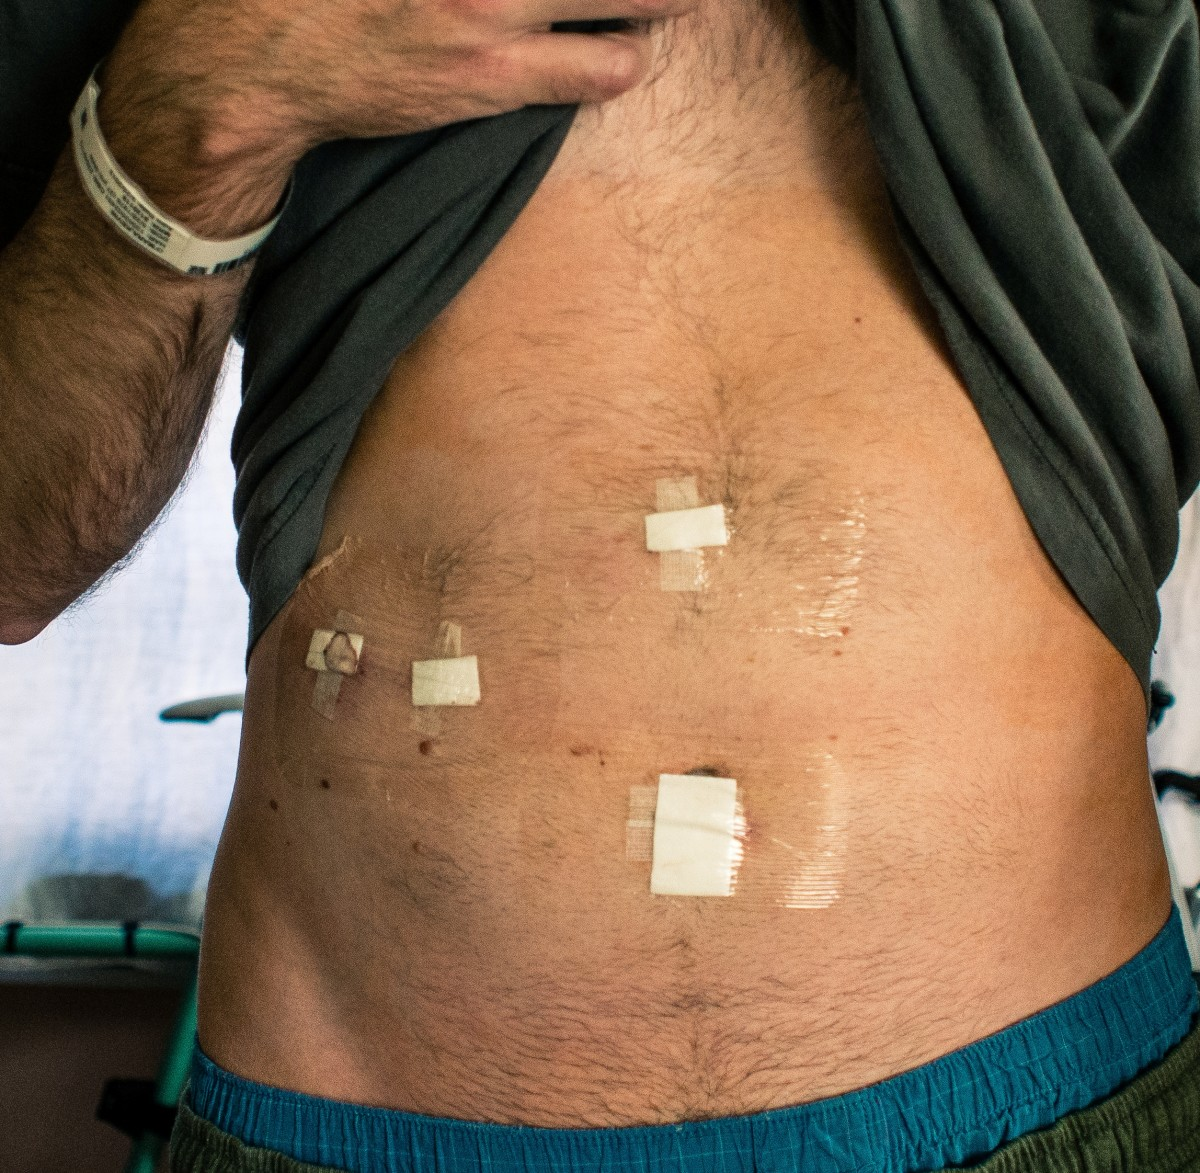 Incisions dressed after the surgery